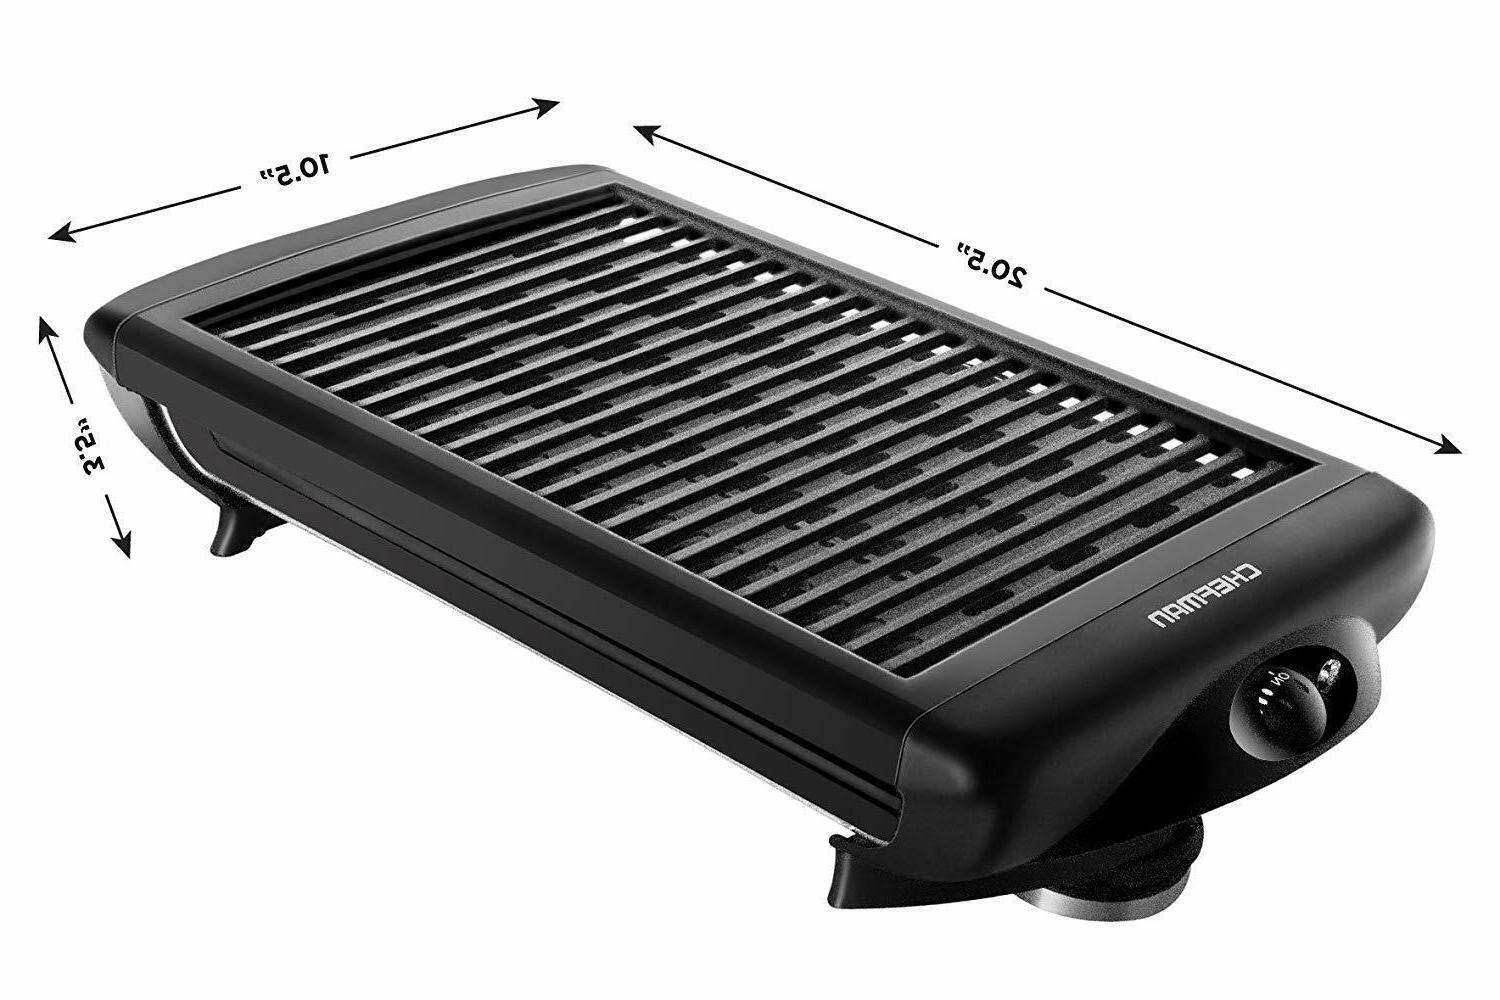 Portable Indoor Smokeless Griddle Compact Barbecue